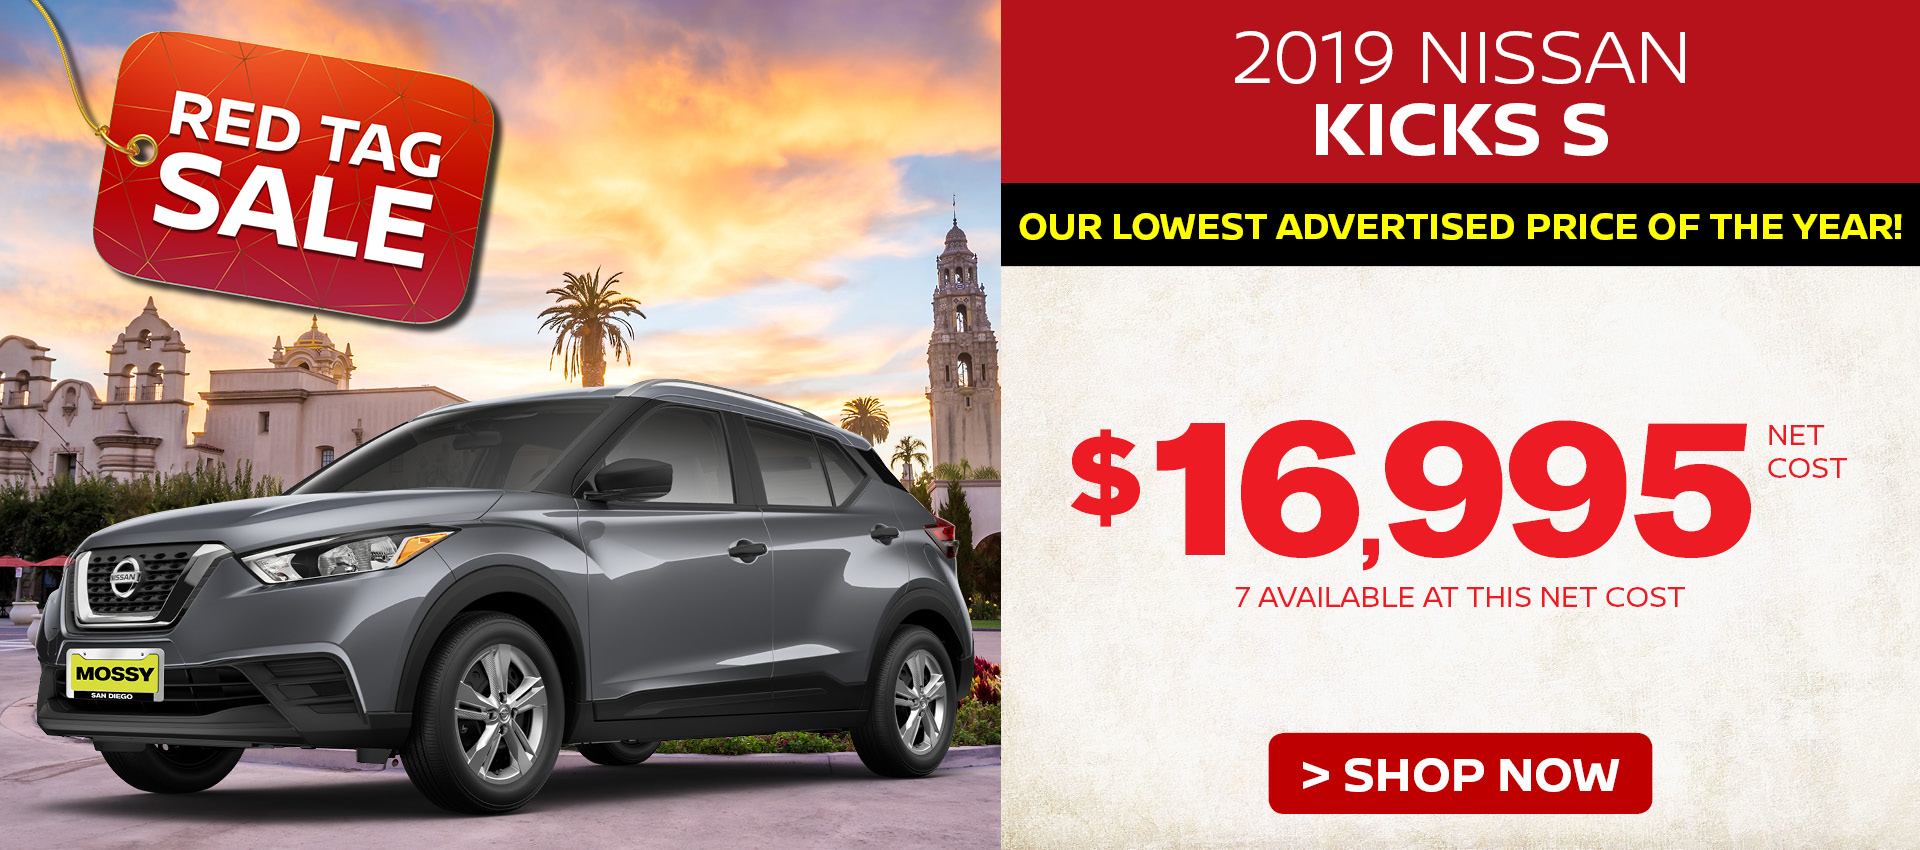 Mossy Nissan - Nissan Kicks $17,995 Purchase HP